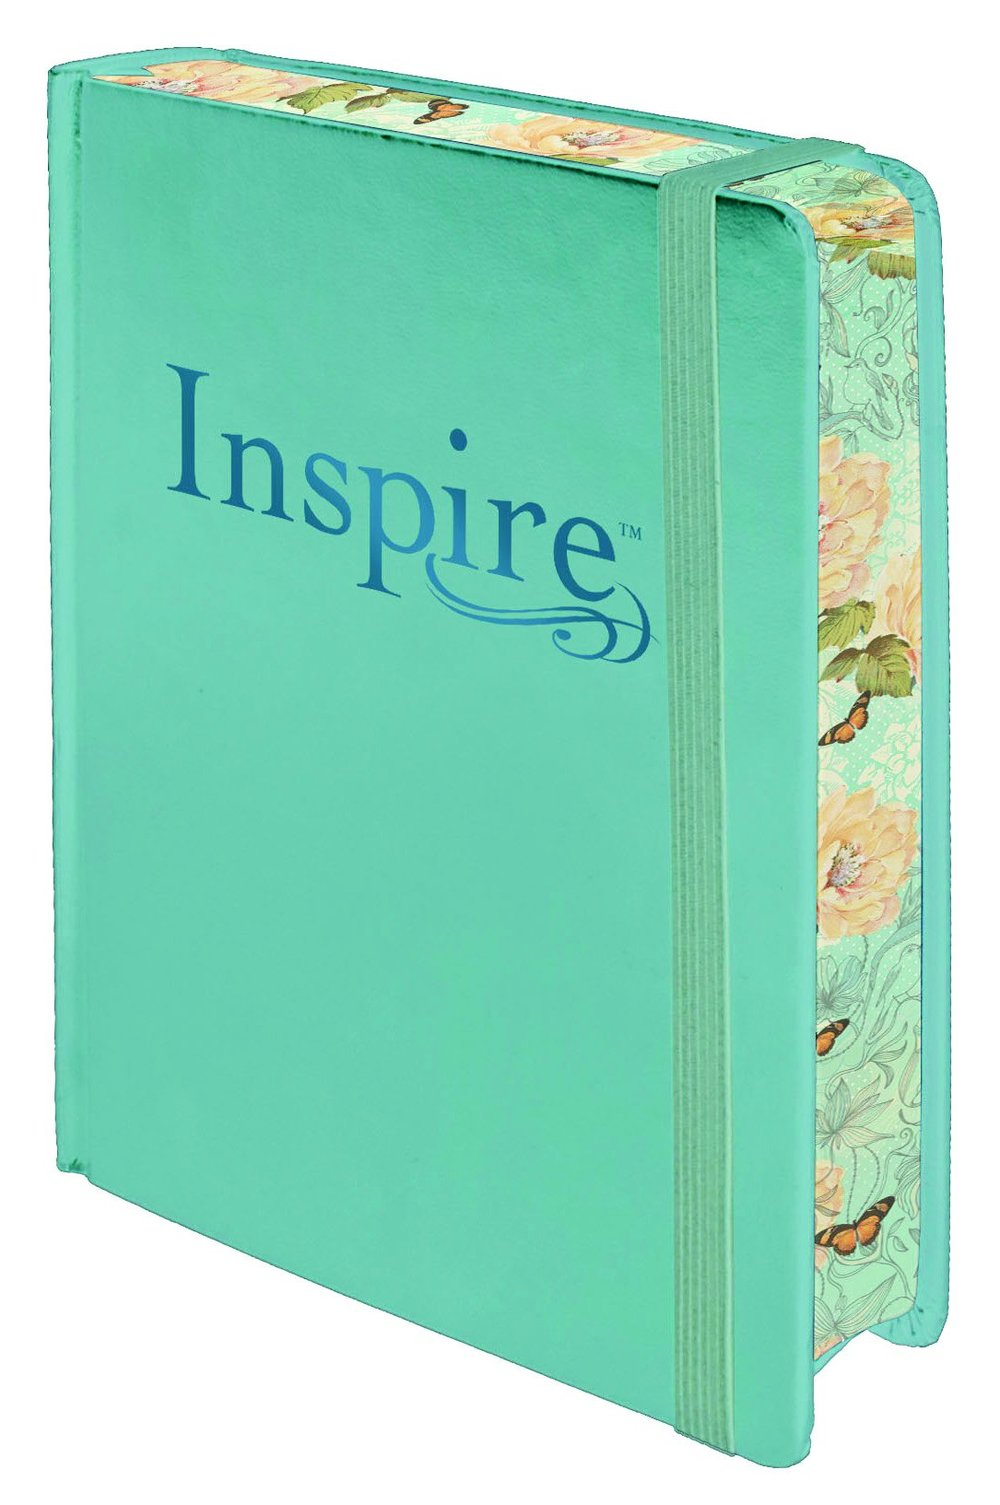 This is an Inspire Bible. It's amazing for Creative Journaling. The ISBN # for purchasing a copy on Amazon or any book retailer is:978-1496419859